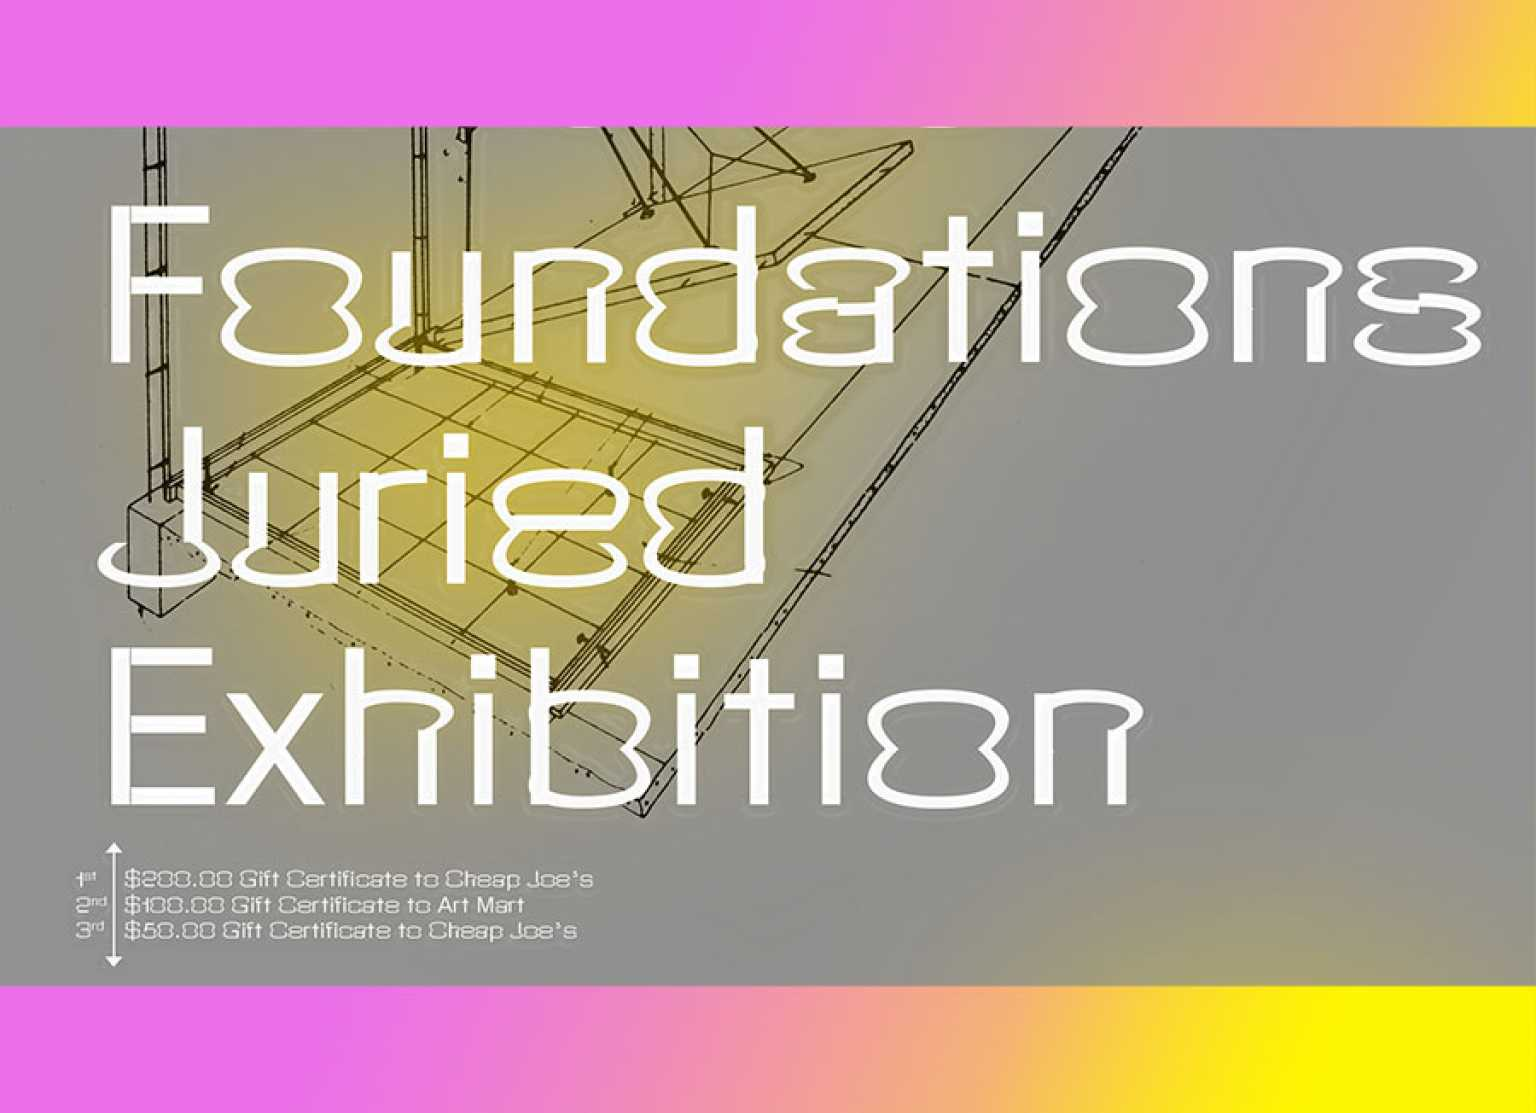 Foundations Juried Exhibition call for entries